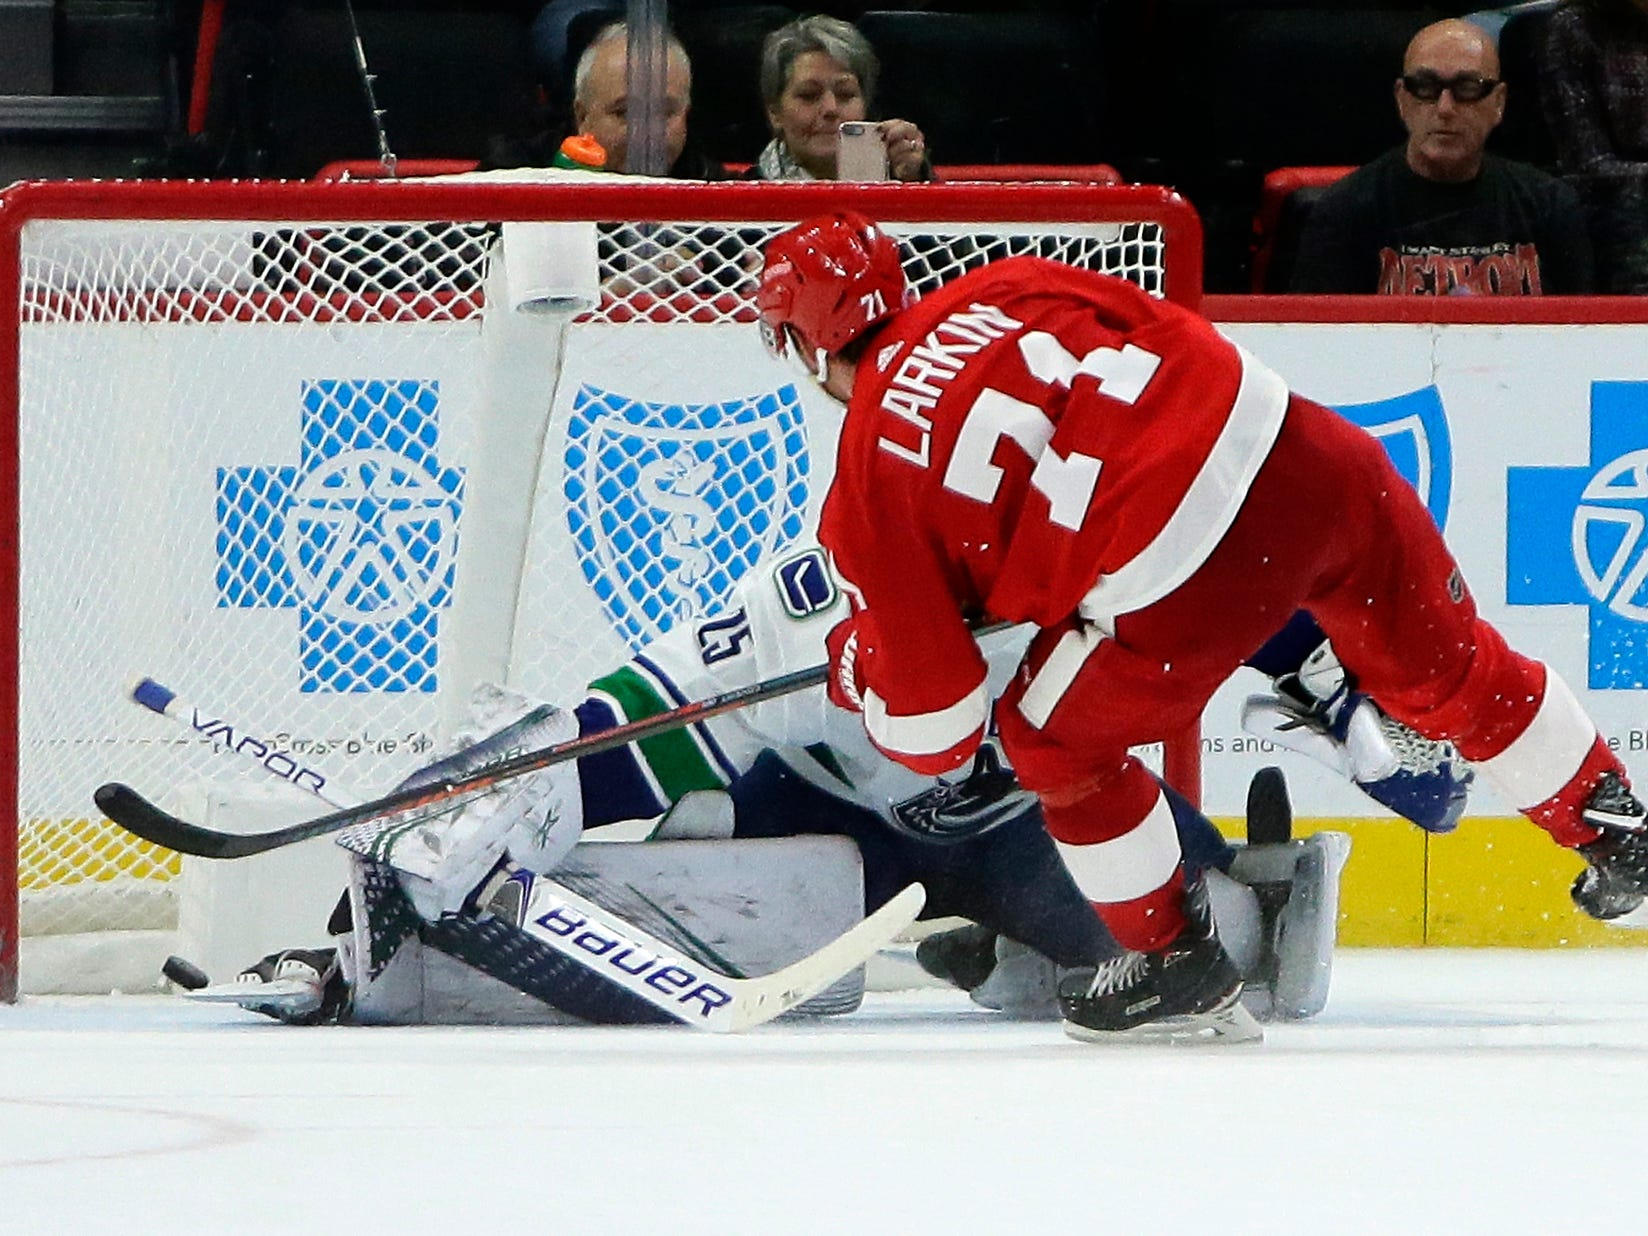 Detroit Red Wings 3, Vancouver Canucks 2 (SO): Photos from LCA